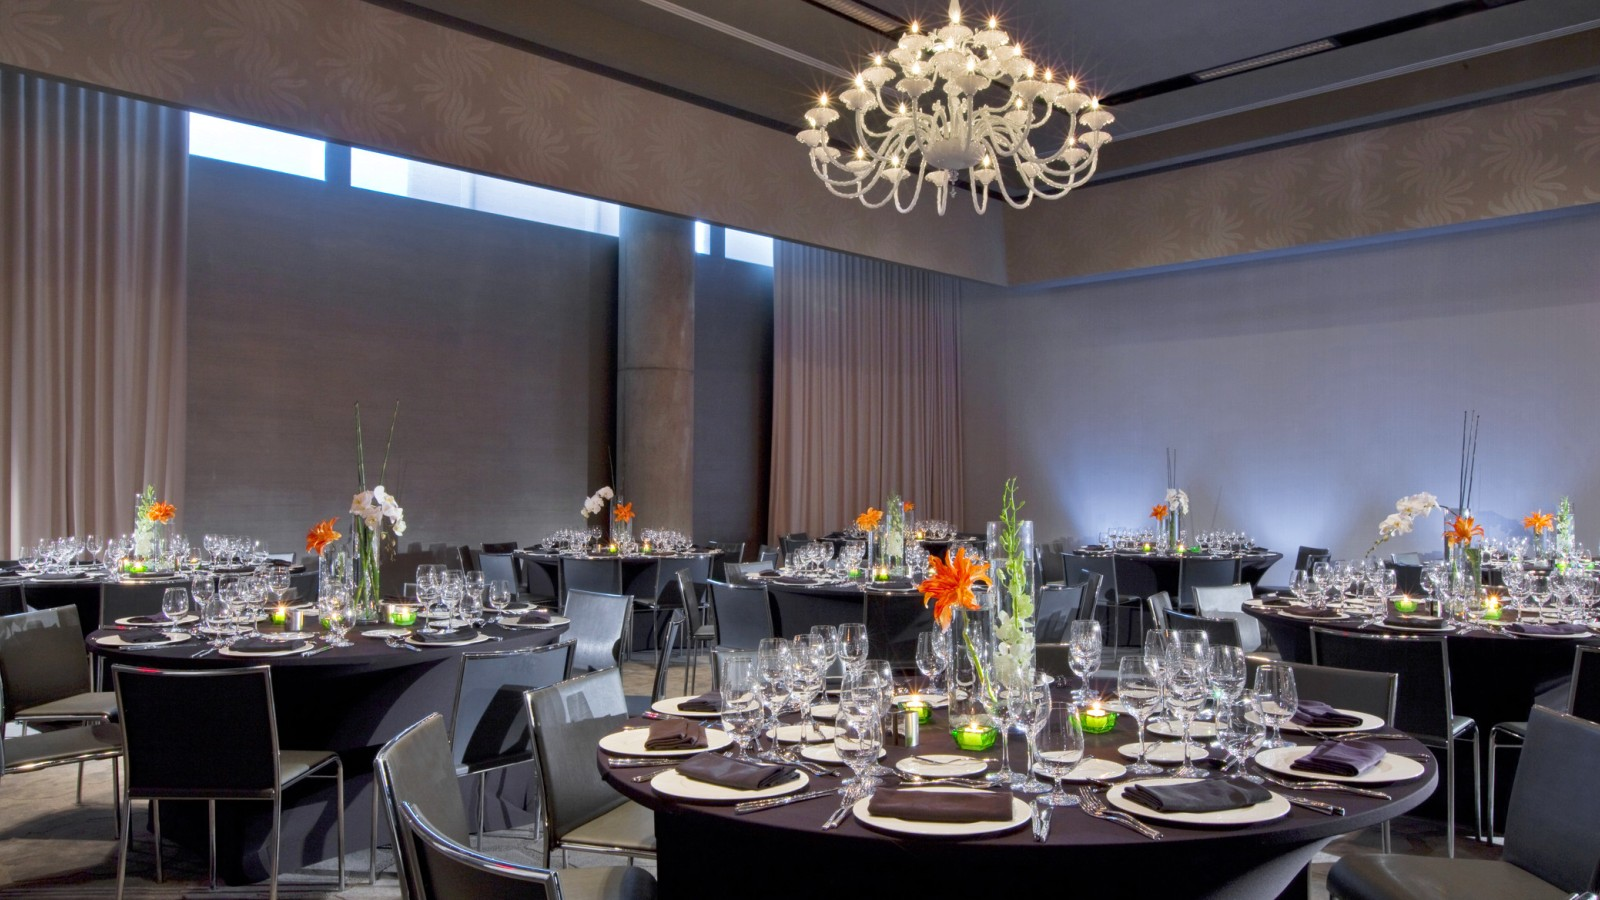 Austin Event Venues - Meeting Facility